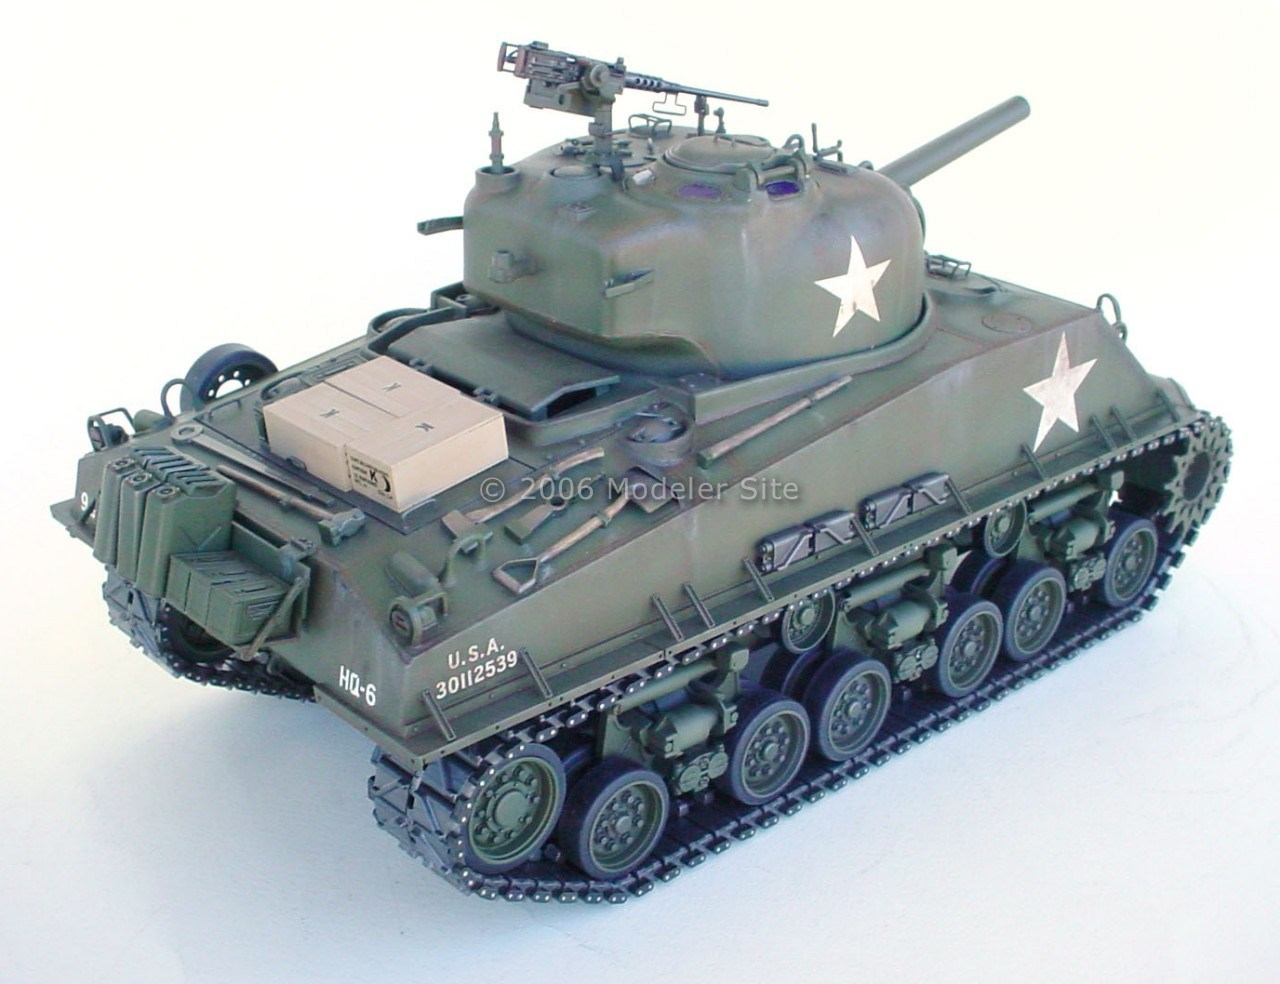 Detailing and painting the 1/16 Tamiya M4 Sherman, a guide for